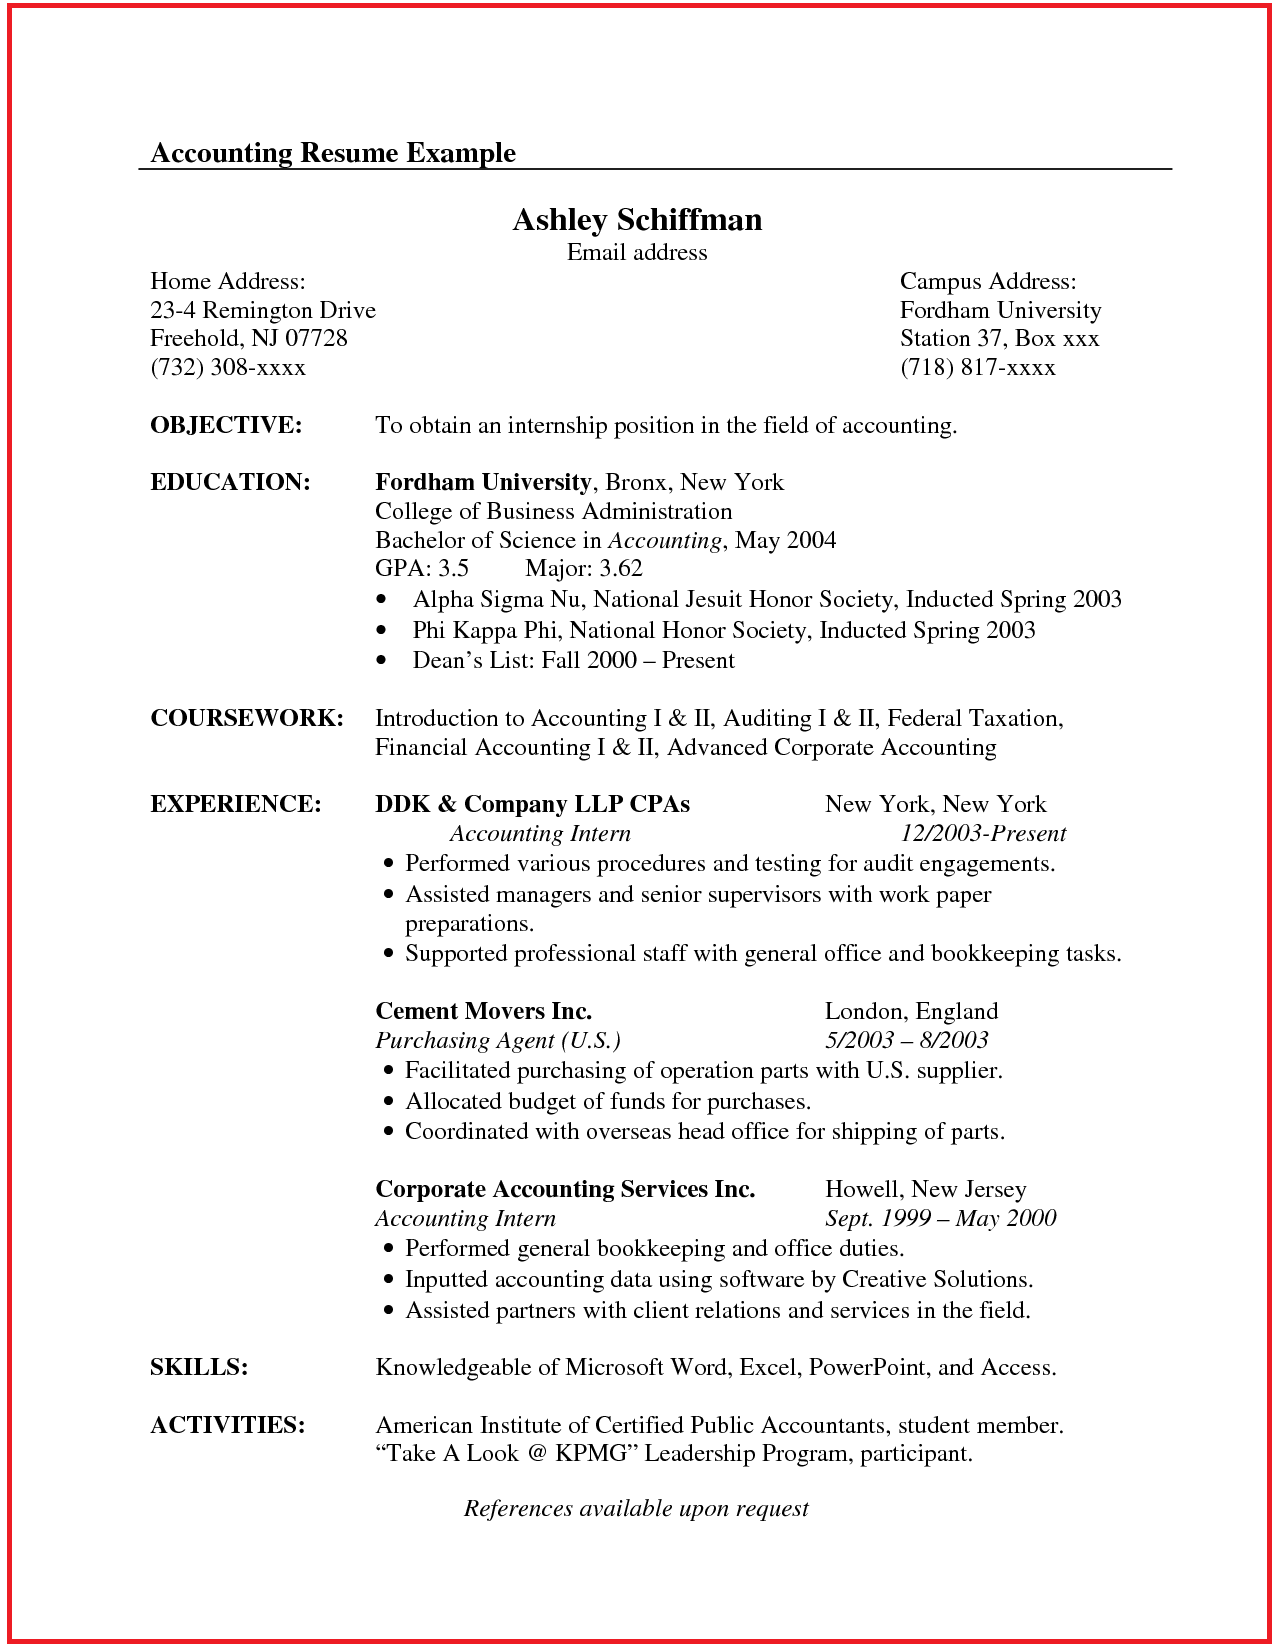 Iec Resume Template Canada Pin Oleh Postresumeformat Di Best Latest Resume